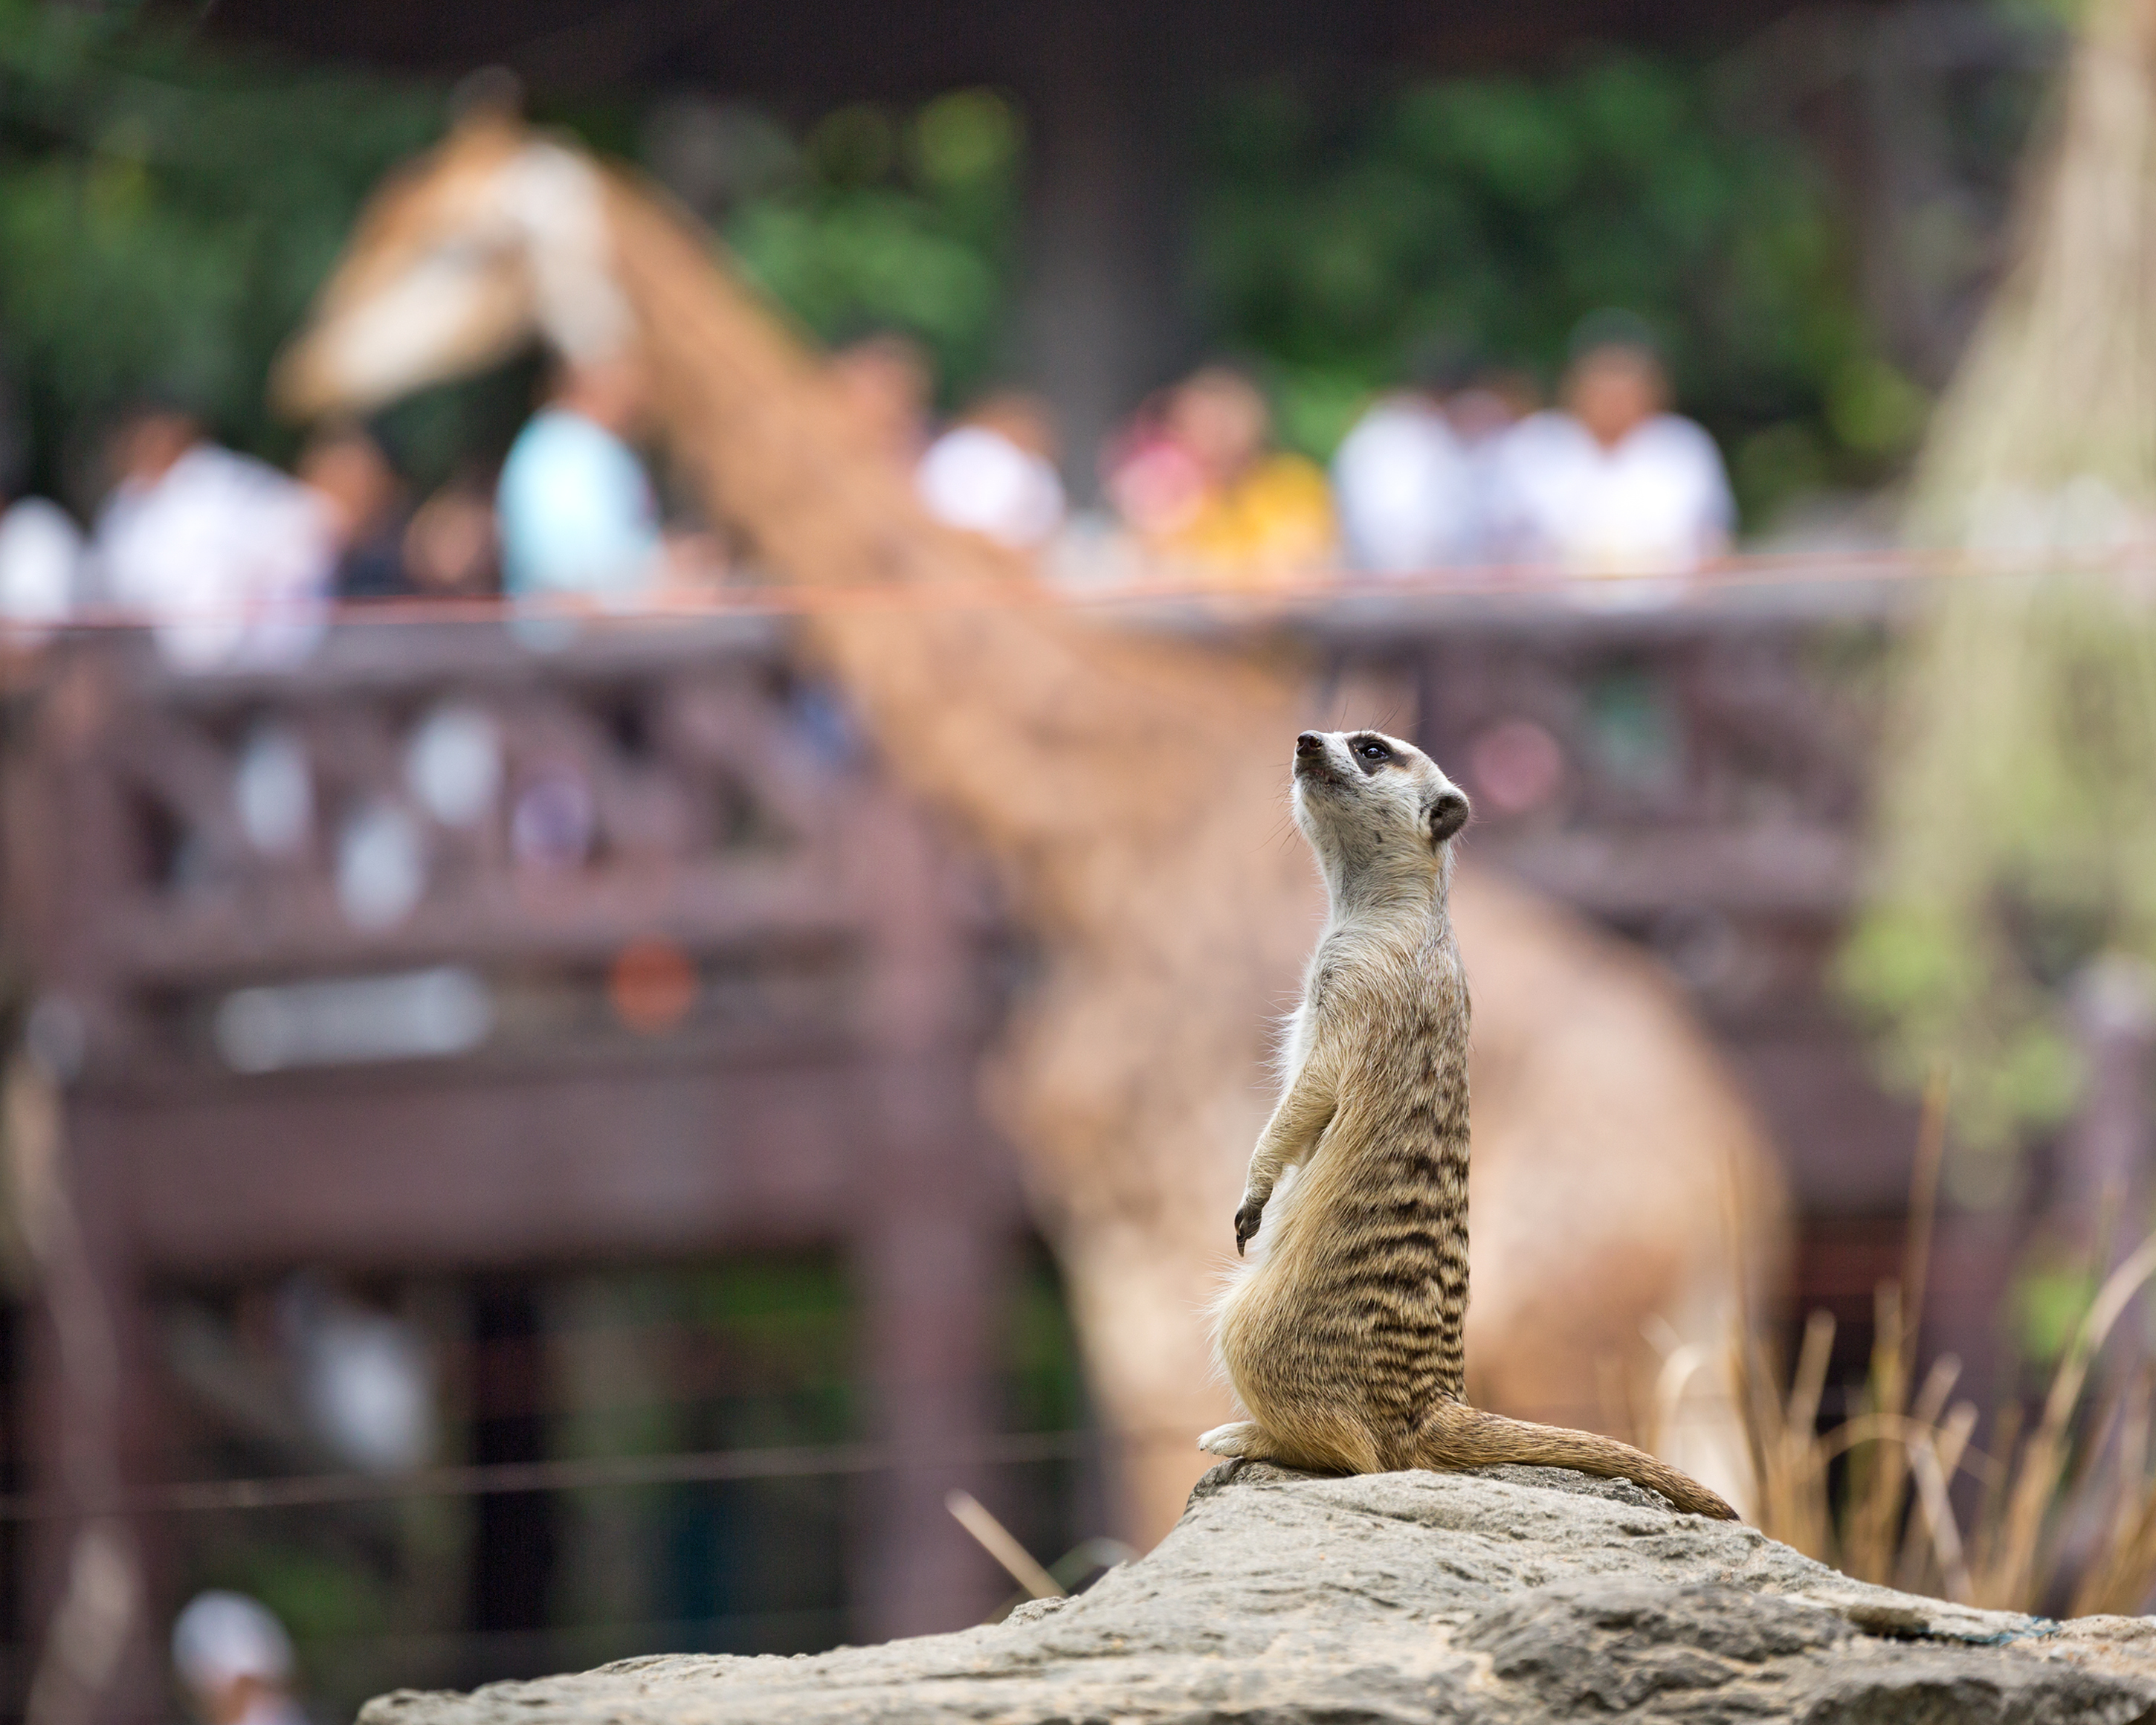 Zoos are a great place to visit but we don't want Australia to become one. Image: Shutterstock.